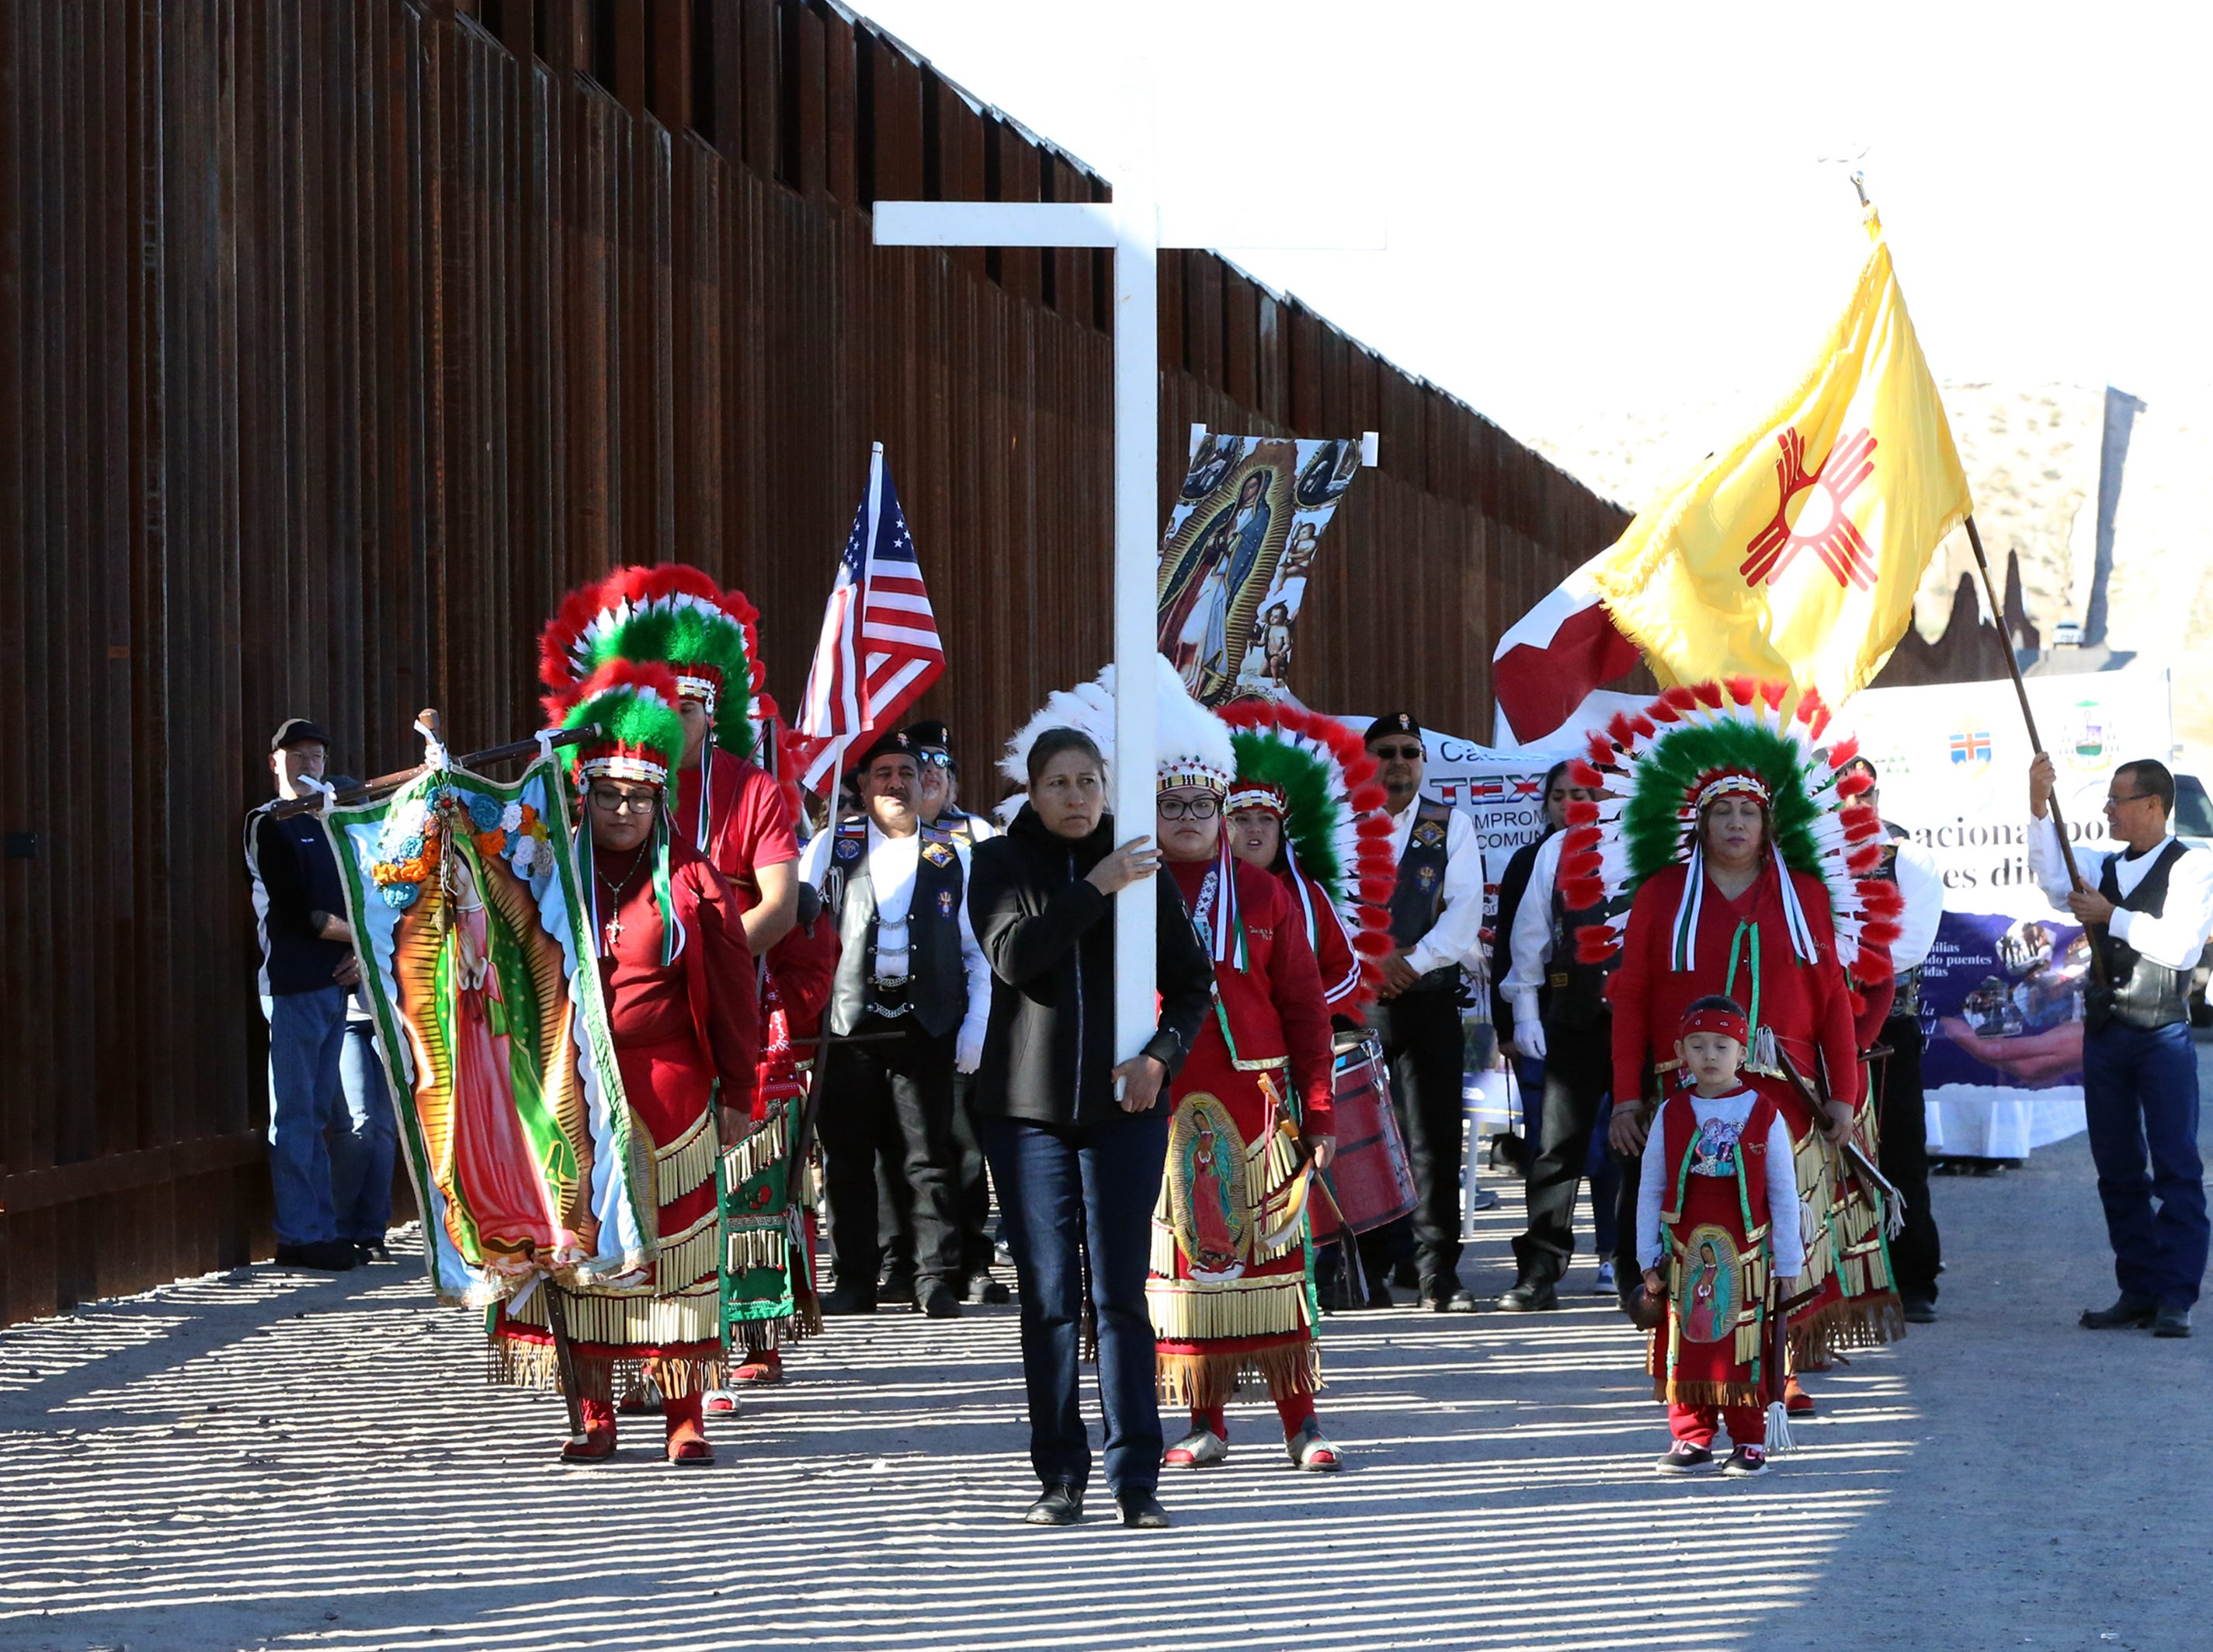 A short procession took place on both sides of the border fence during the the annual Border Mass in the Anapra area of Sunland Park, N.M.